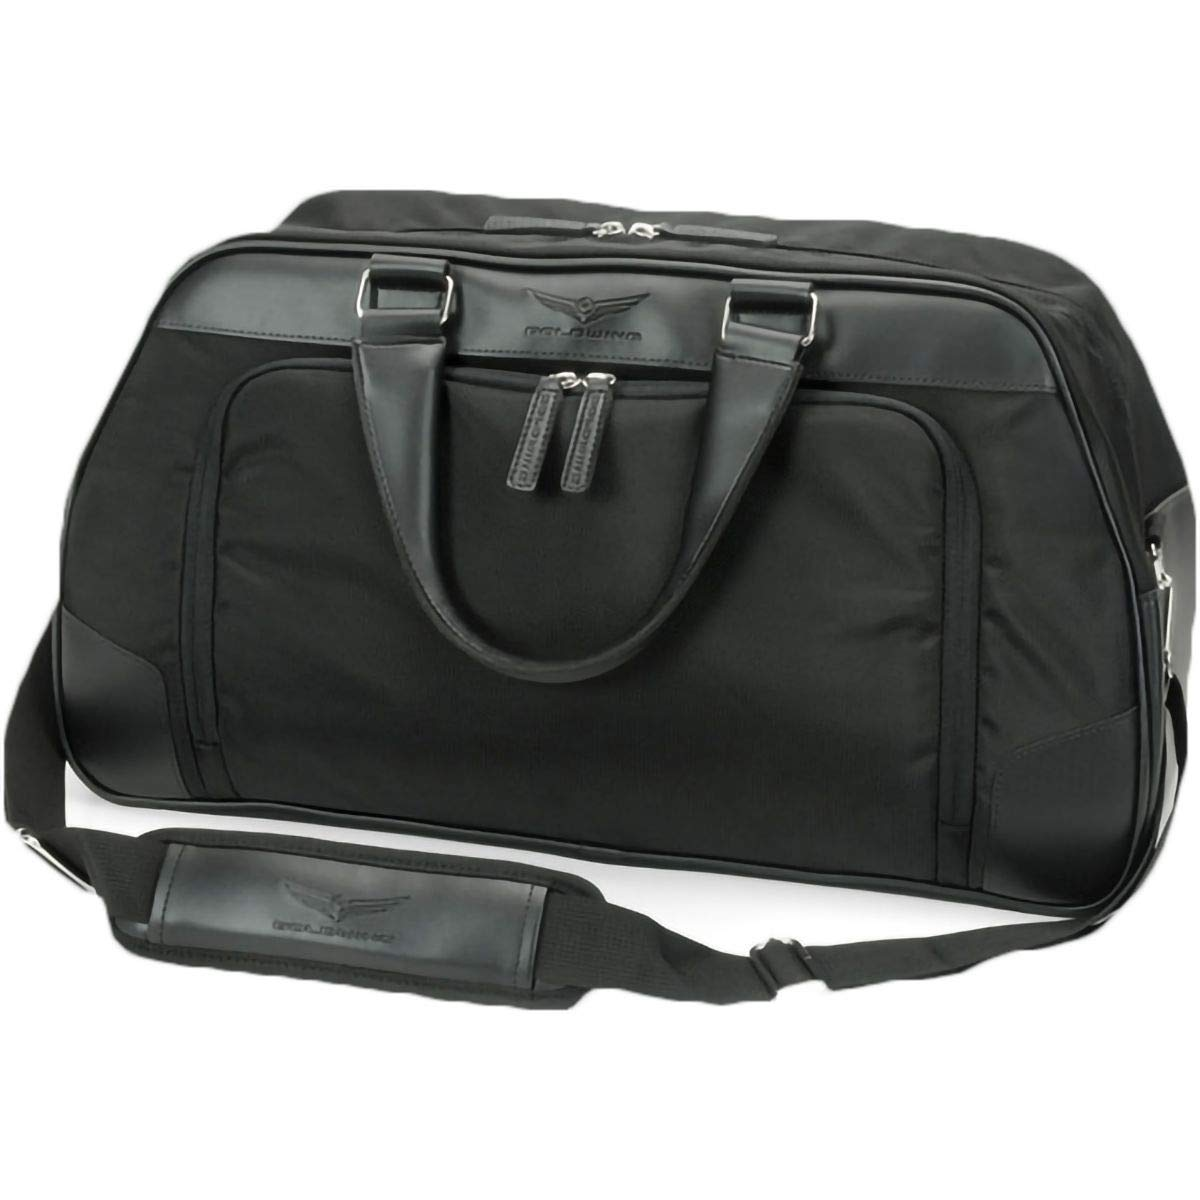 Honda 18 GL1800TOURDCT Genuine Accessories Trunk Liner Travel Bag by Honda